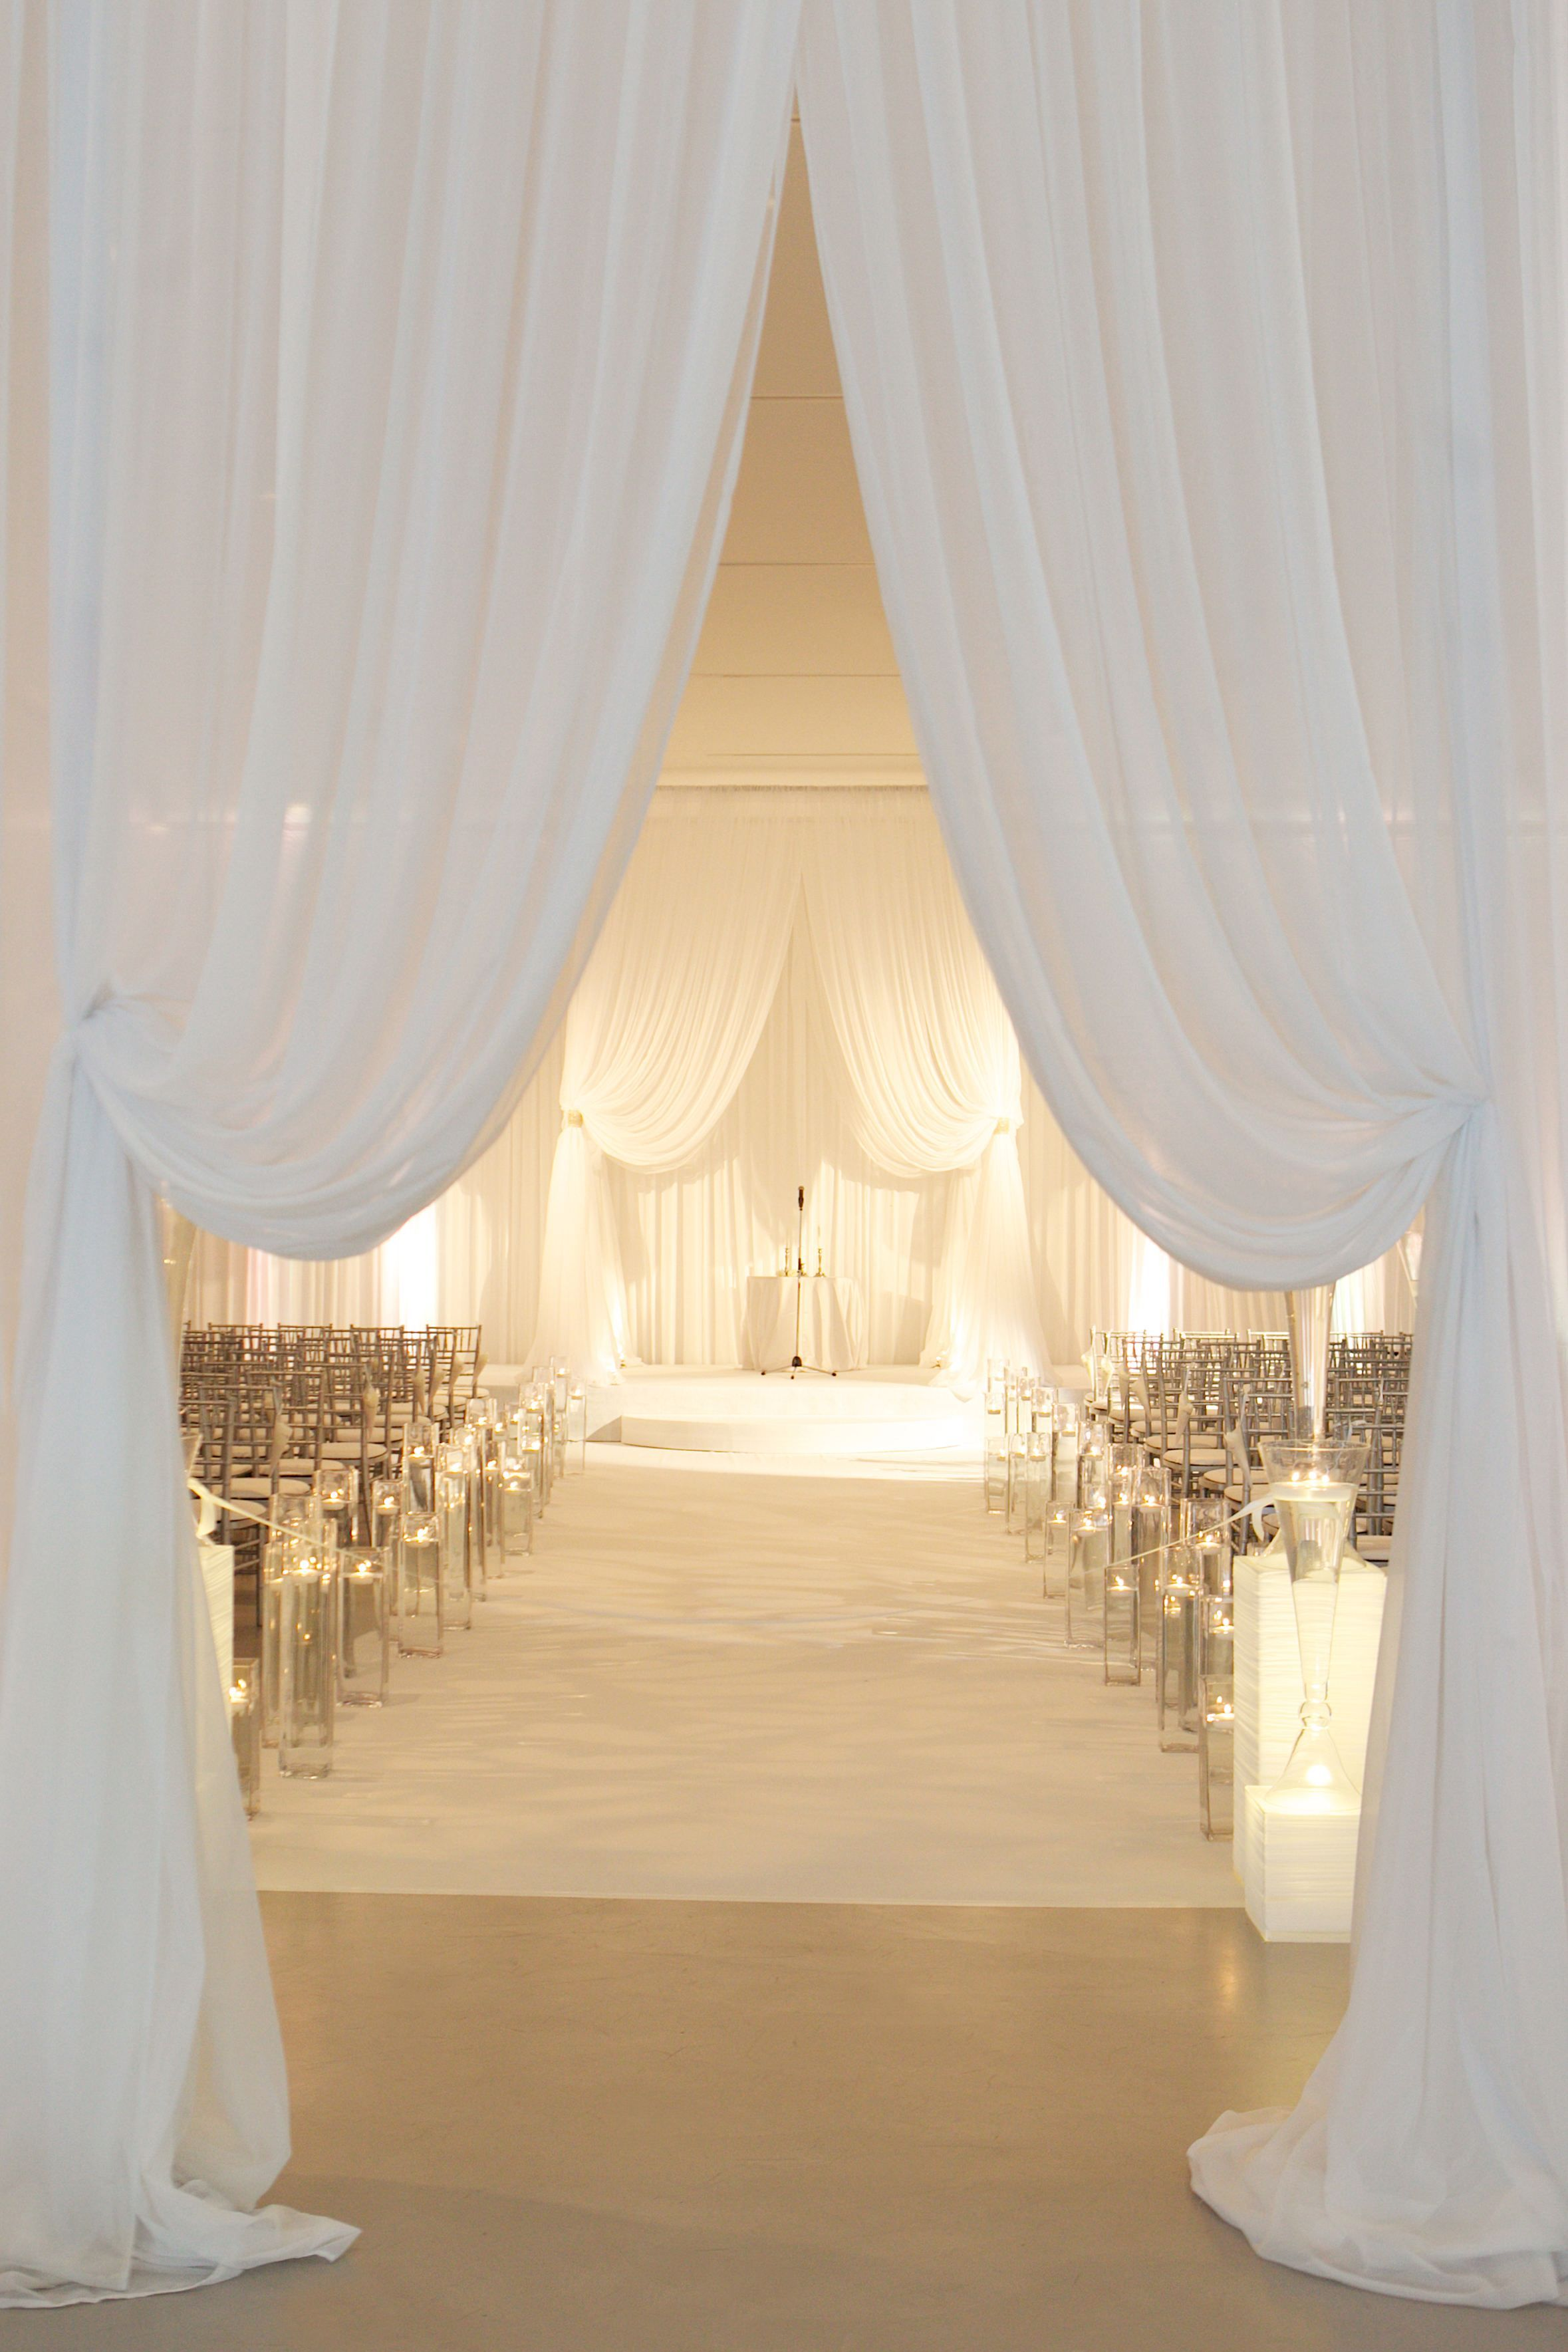 Columns ivory fabric uplighting wedding ceremony downtown double tree - How To Transform Your Wedding With Romantic Drapery